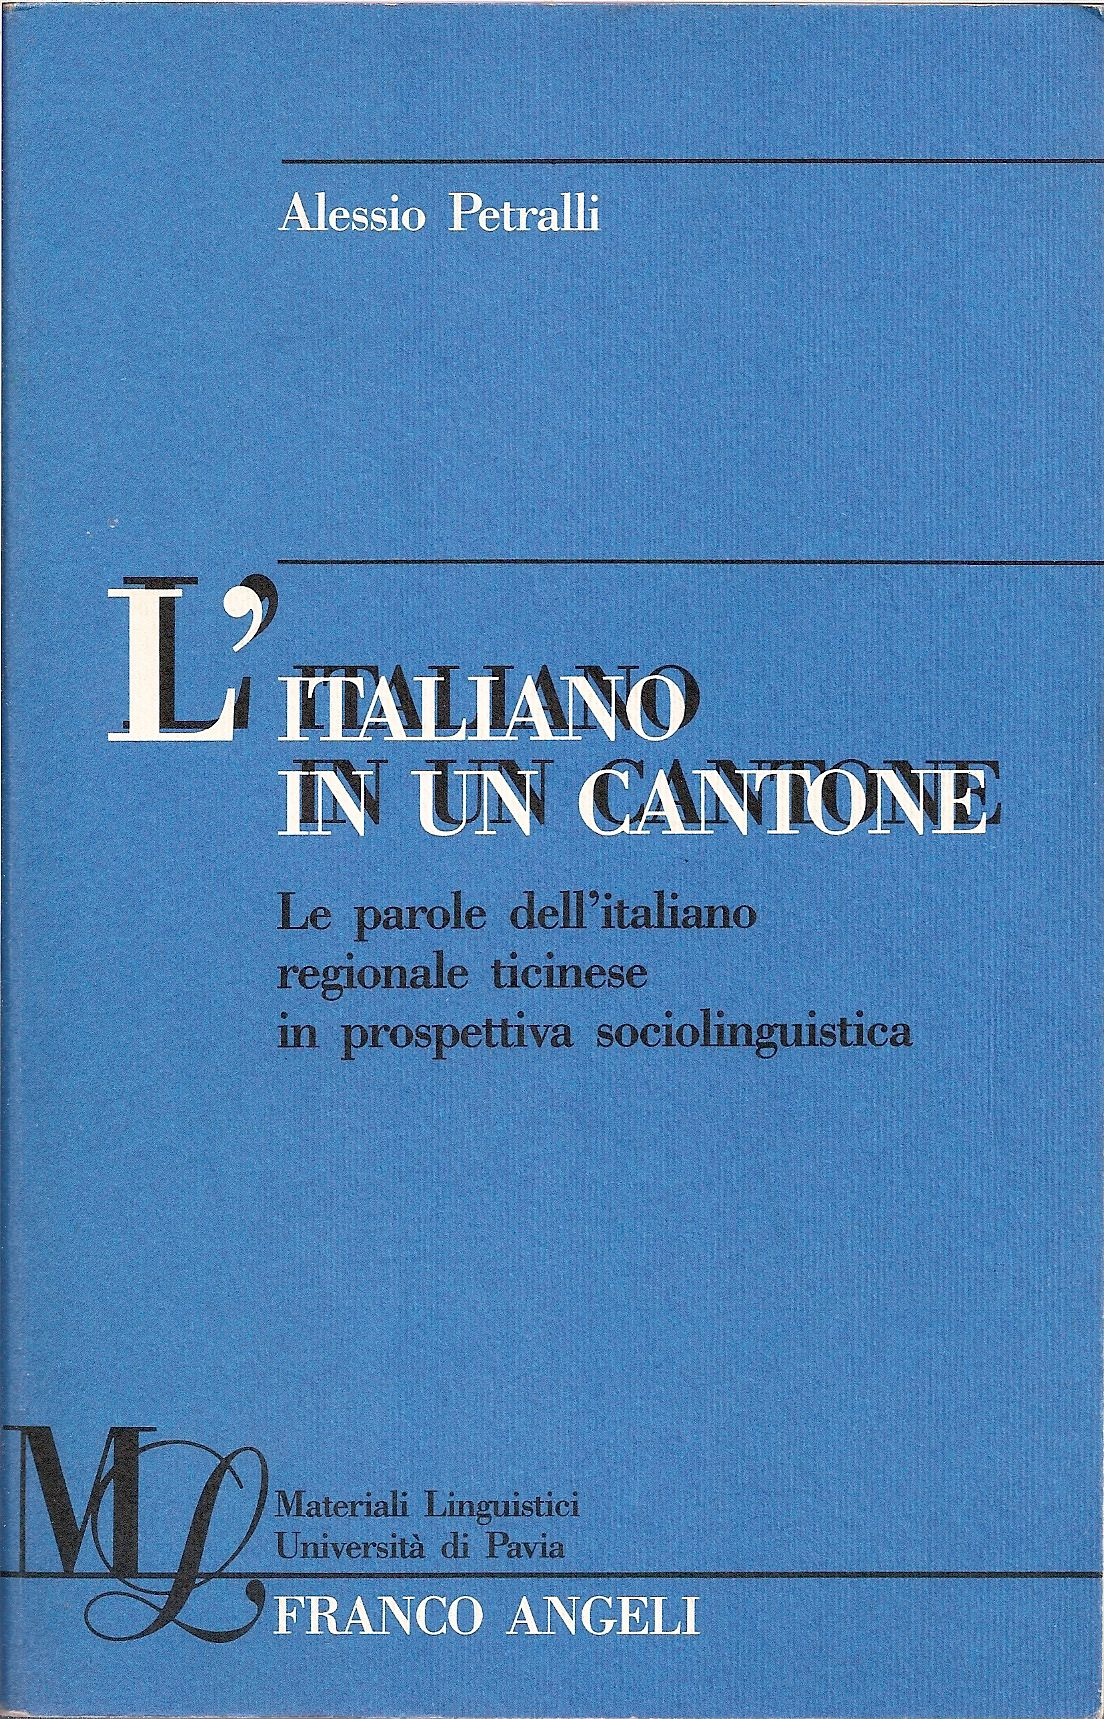 L' italiano in un cantone